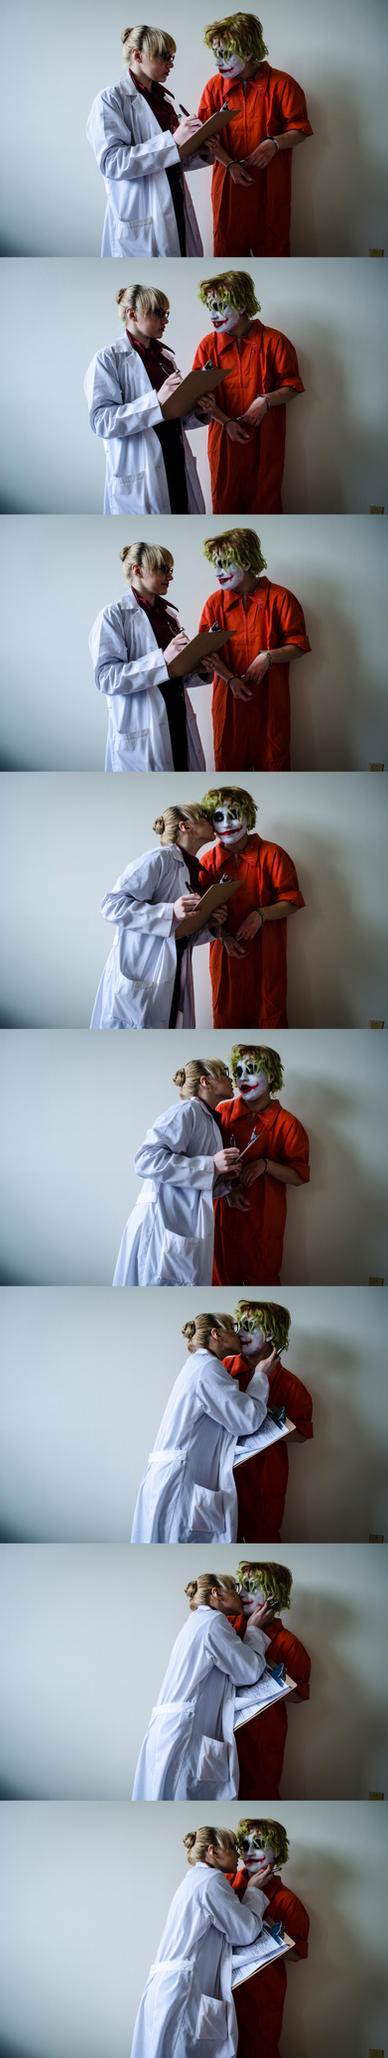 Dr. Harleen Quinzel overseeing Patient 4479 [Pt 1] by NabCosplay